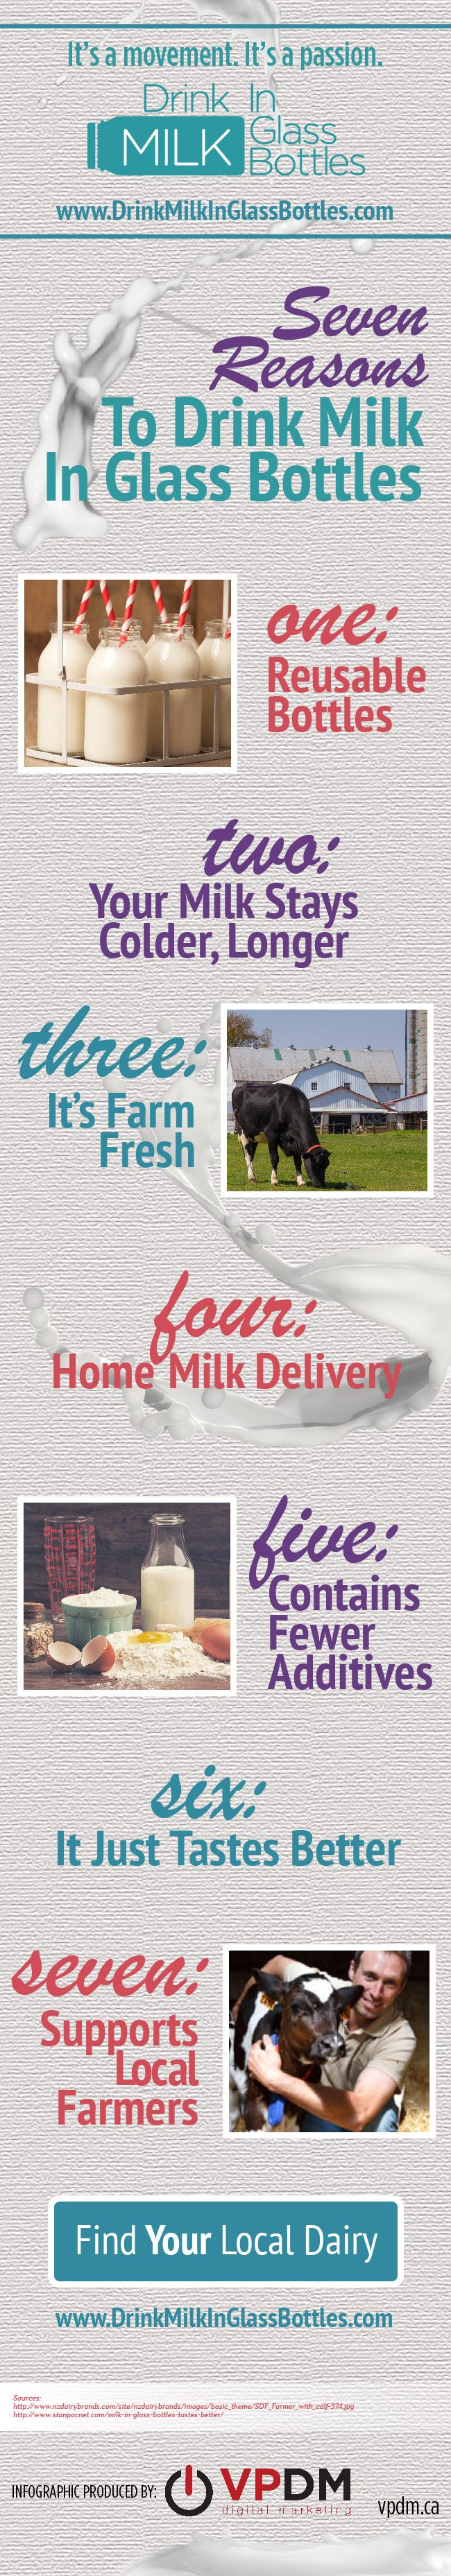 Why should you join the wave of consumers making the switch to buying milk in glass bottles? Here's a few good reasons! #MilkInGlassBottles #FarmFresh #Milk #Dairy #DairyFarm #GlassBottles #DrinkMilk